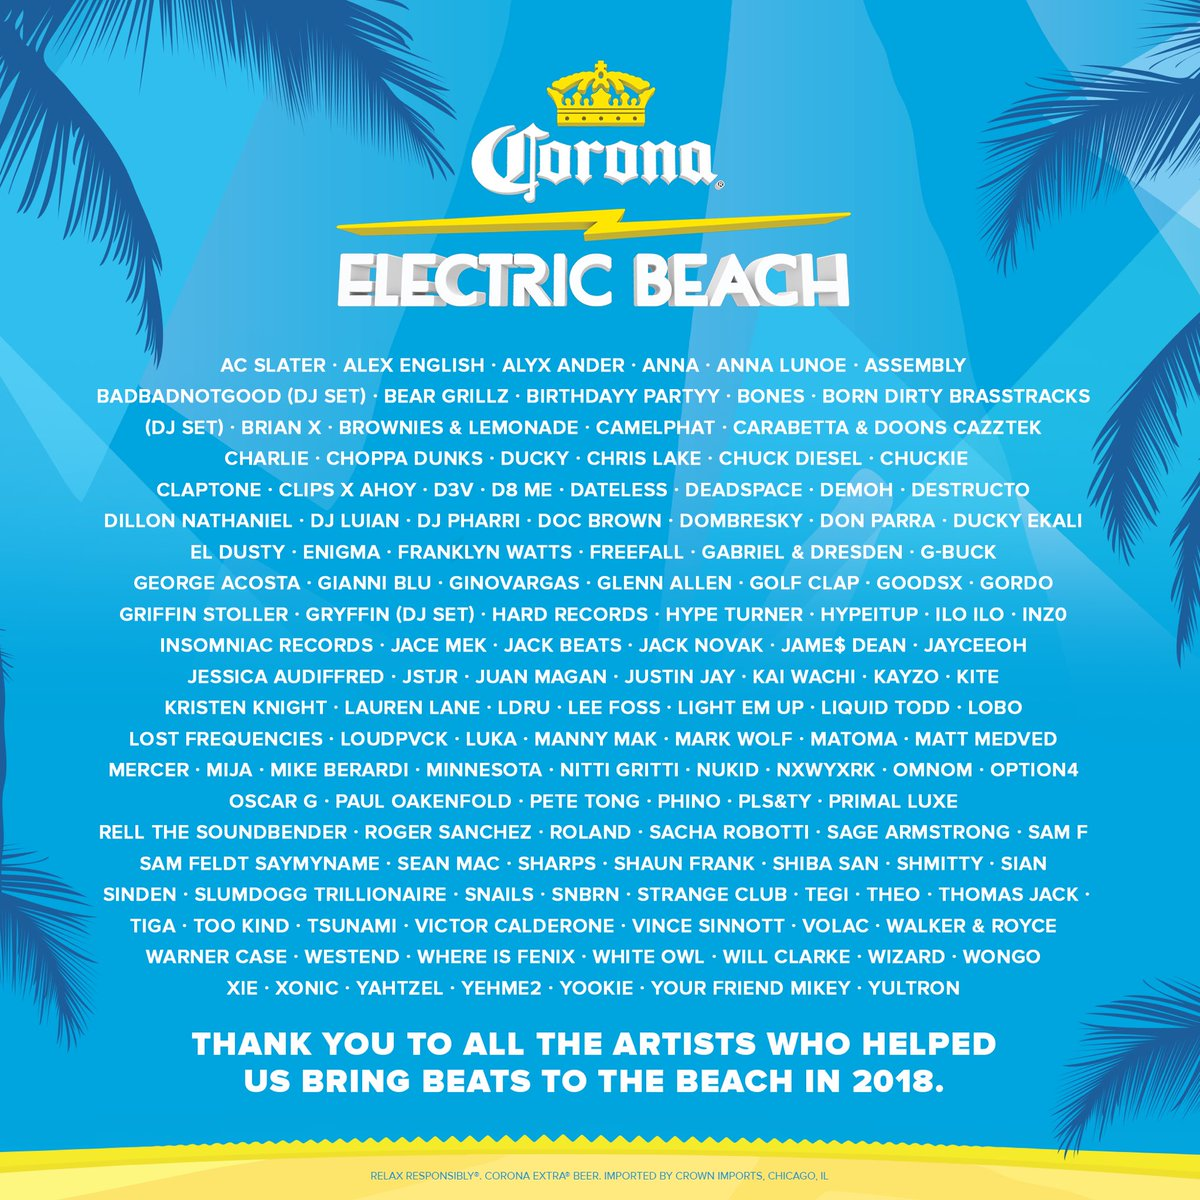 Electric Beach on Twitter: